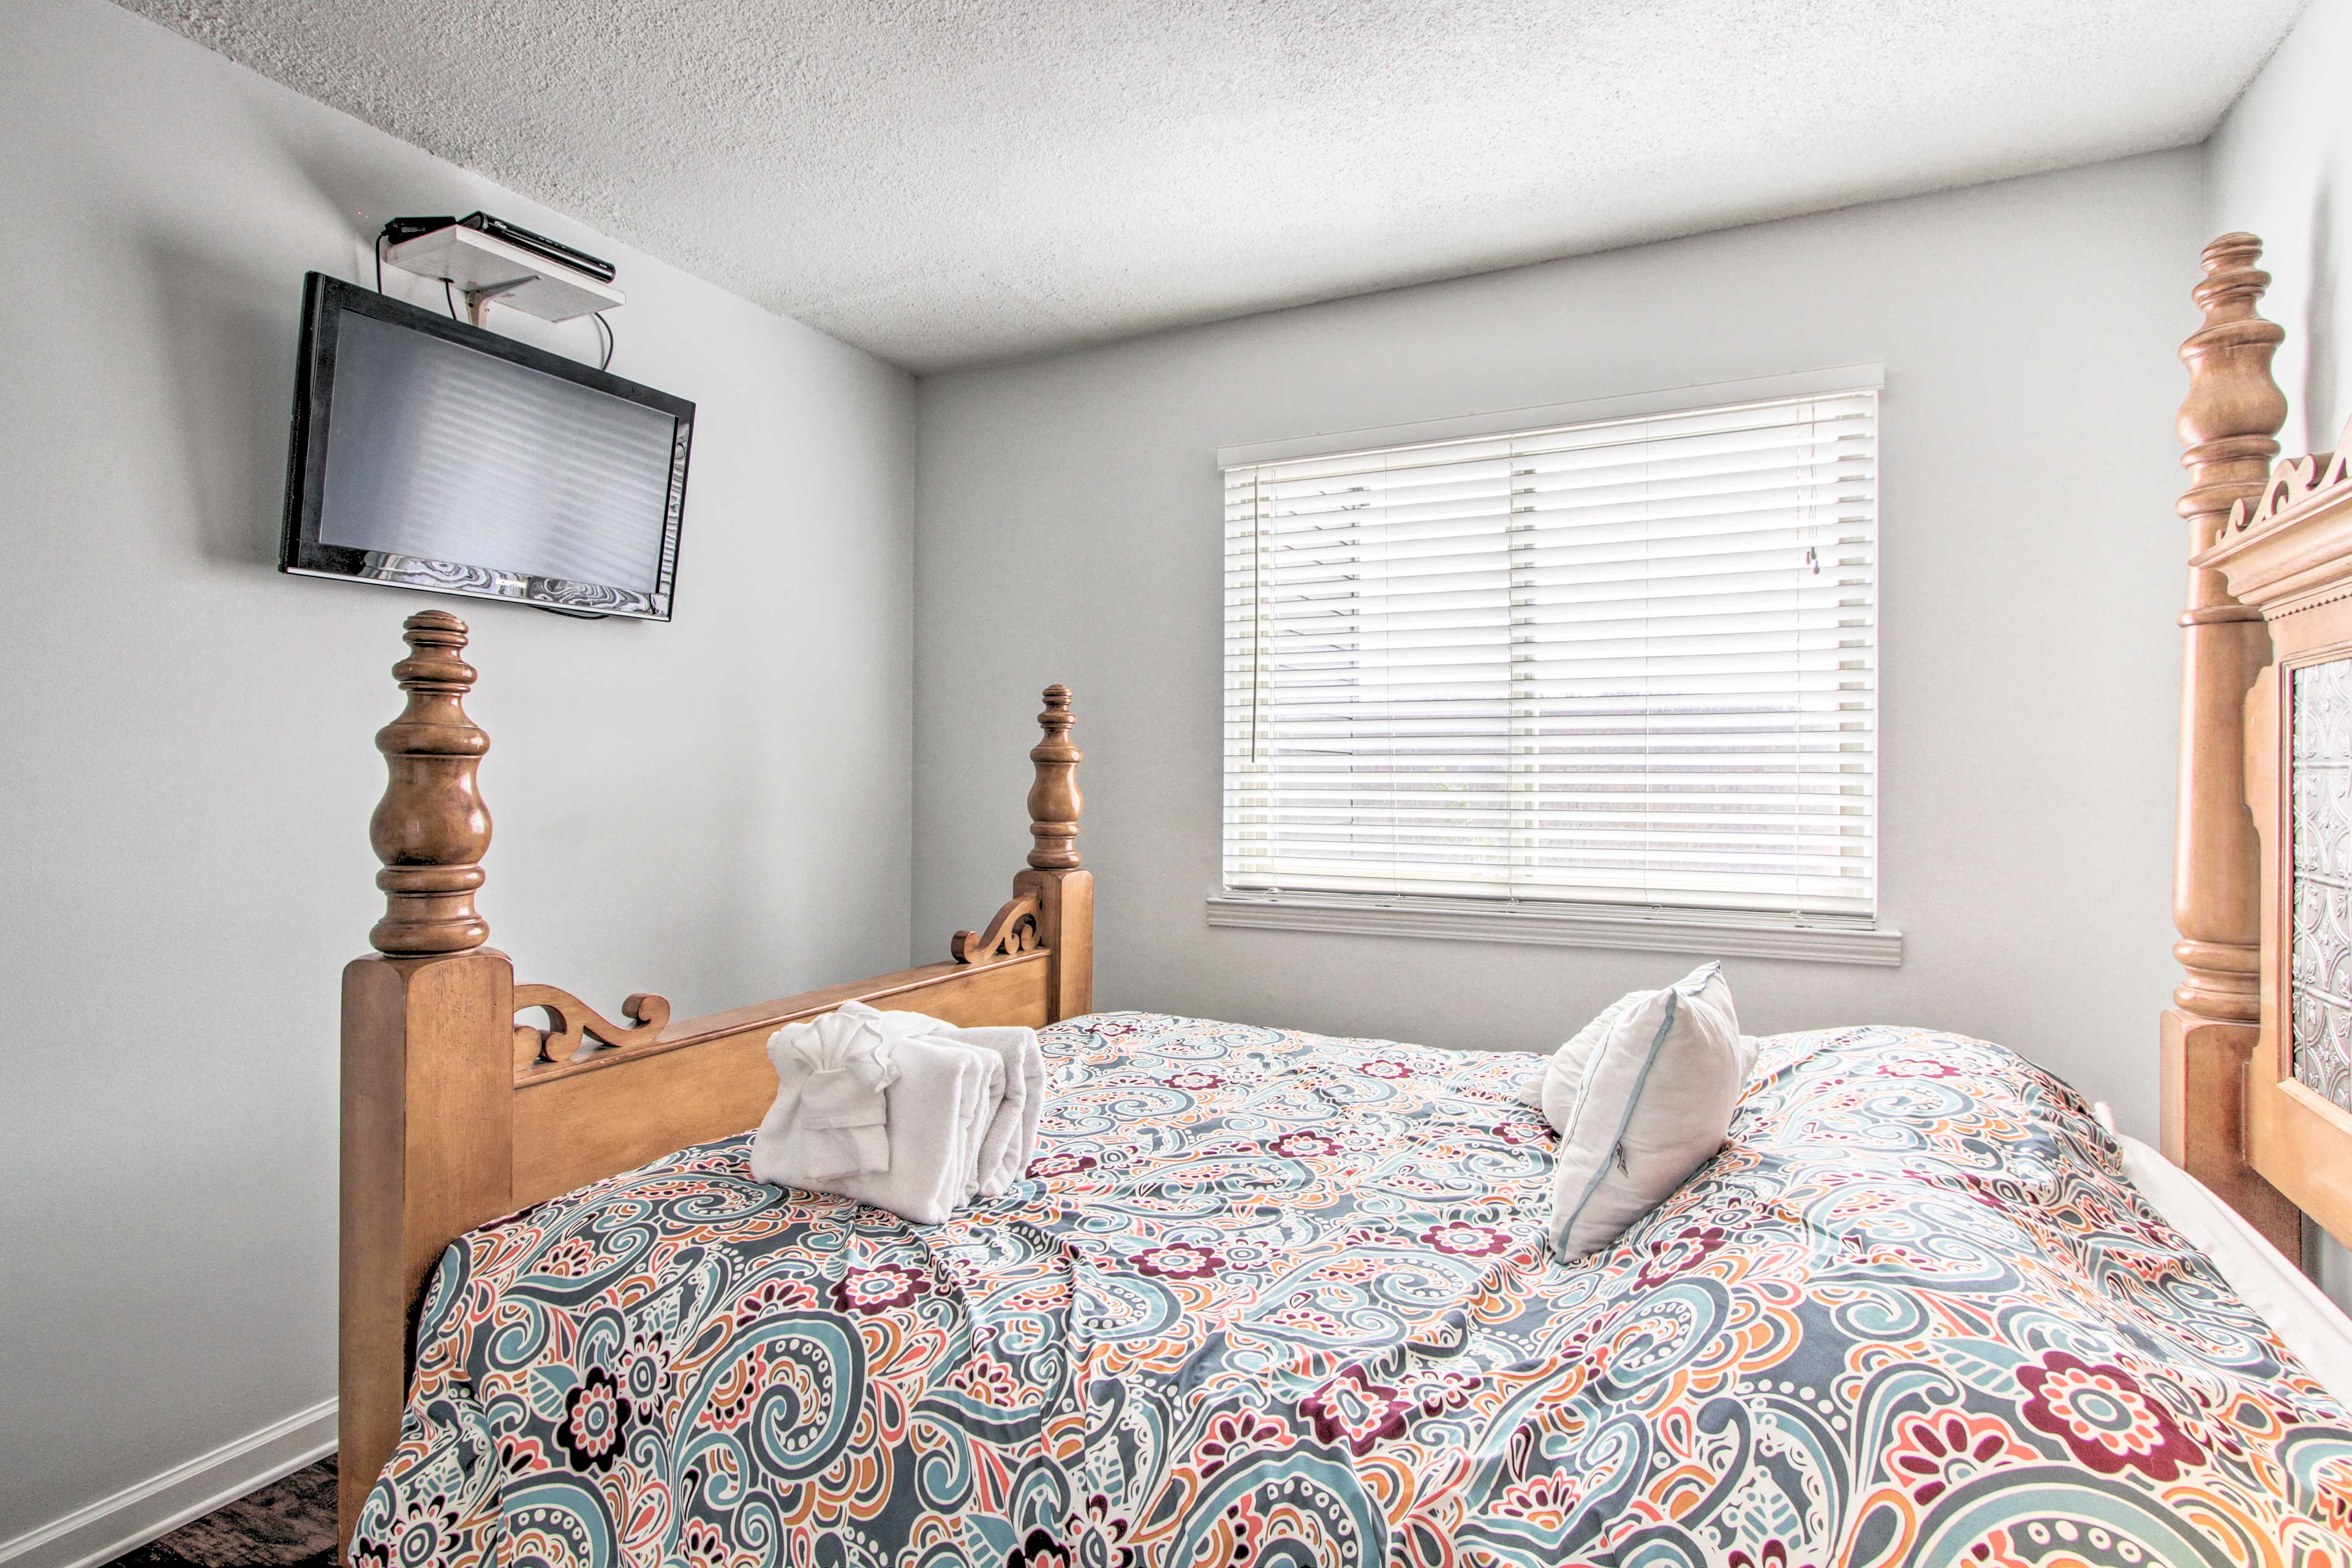 This second bedroom is enchanted in charm by natural wood elements.